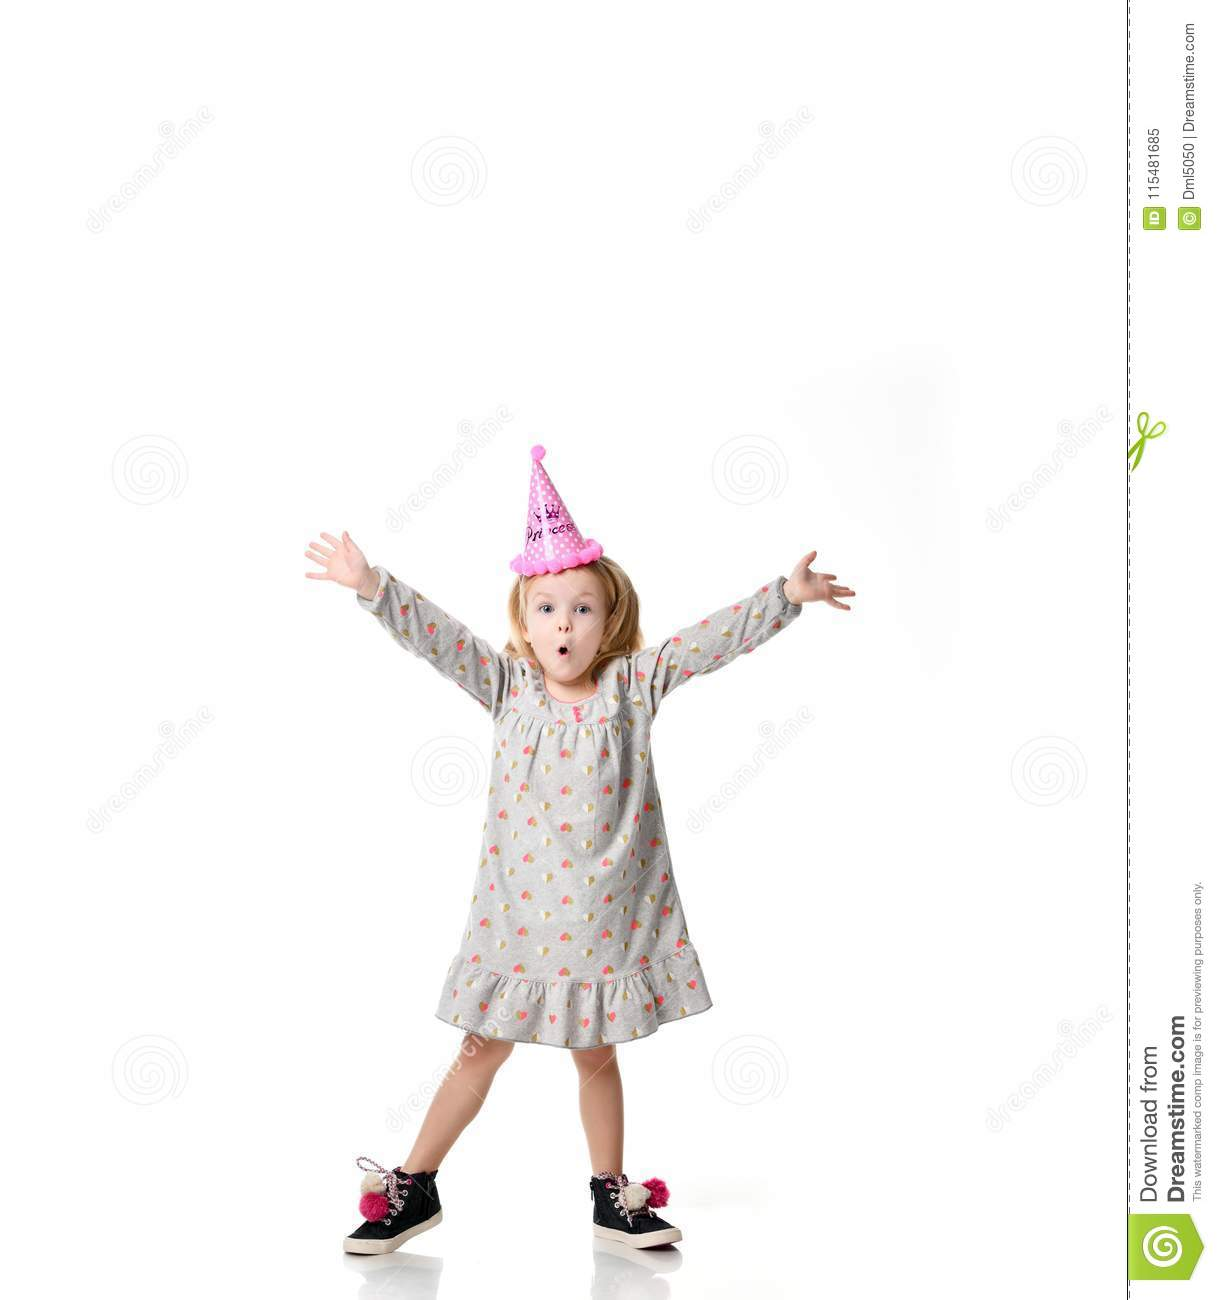 Young blond girl in birthday party princess hat surprised emotions with hands spread up isolated on a white